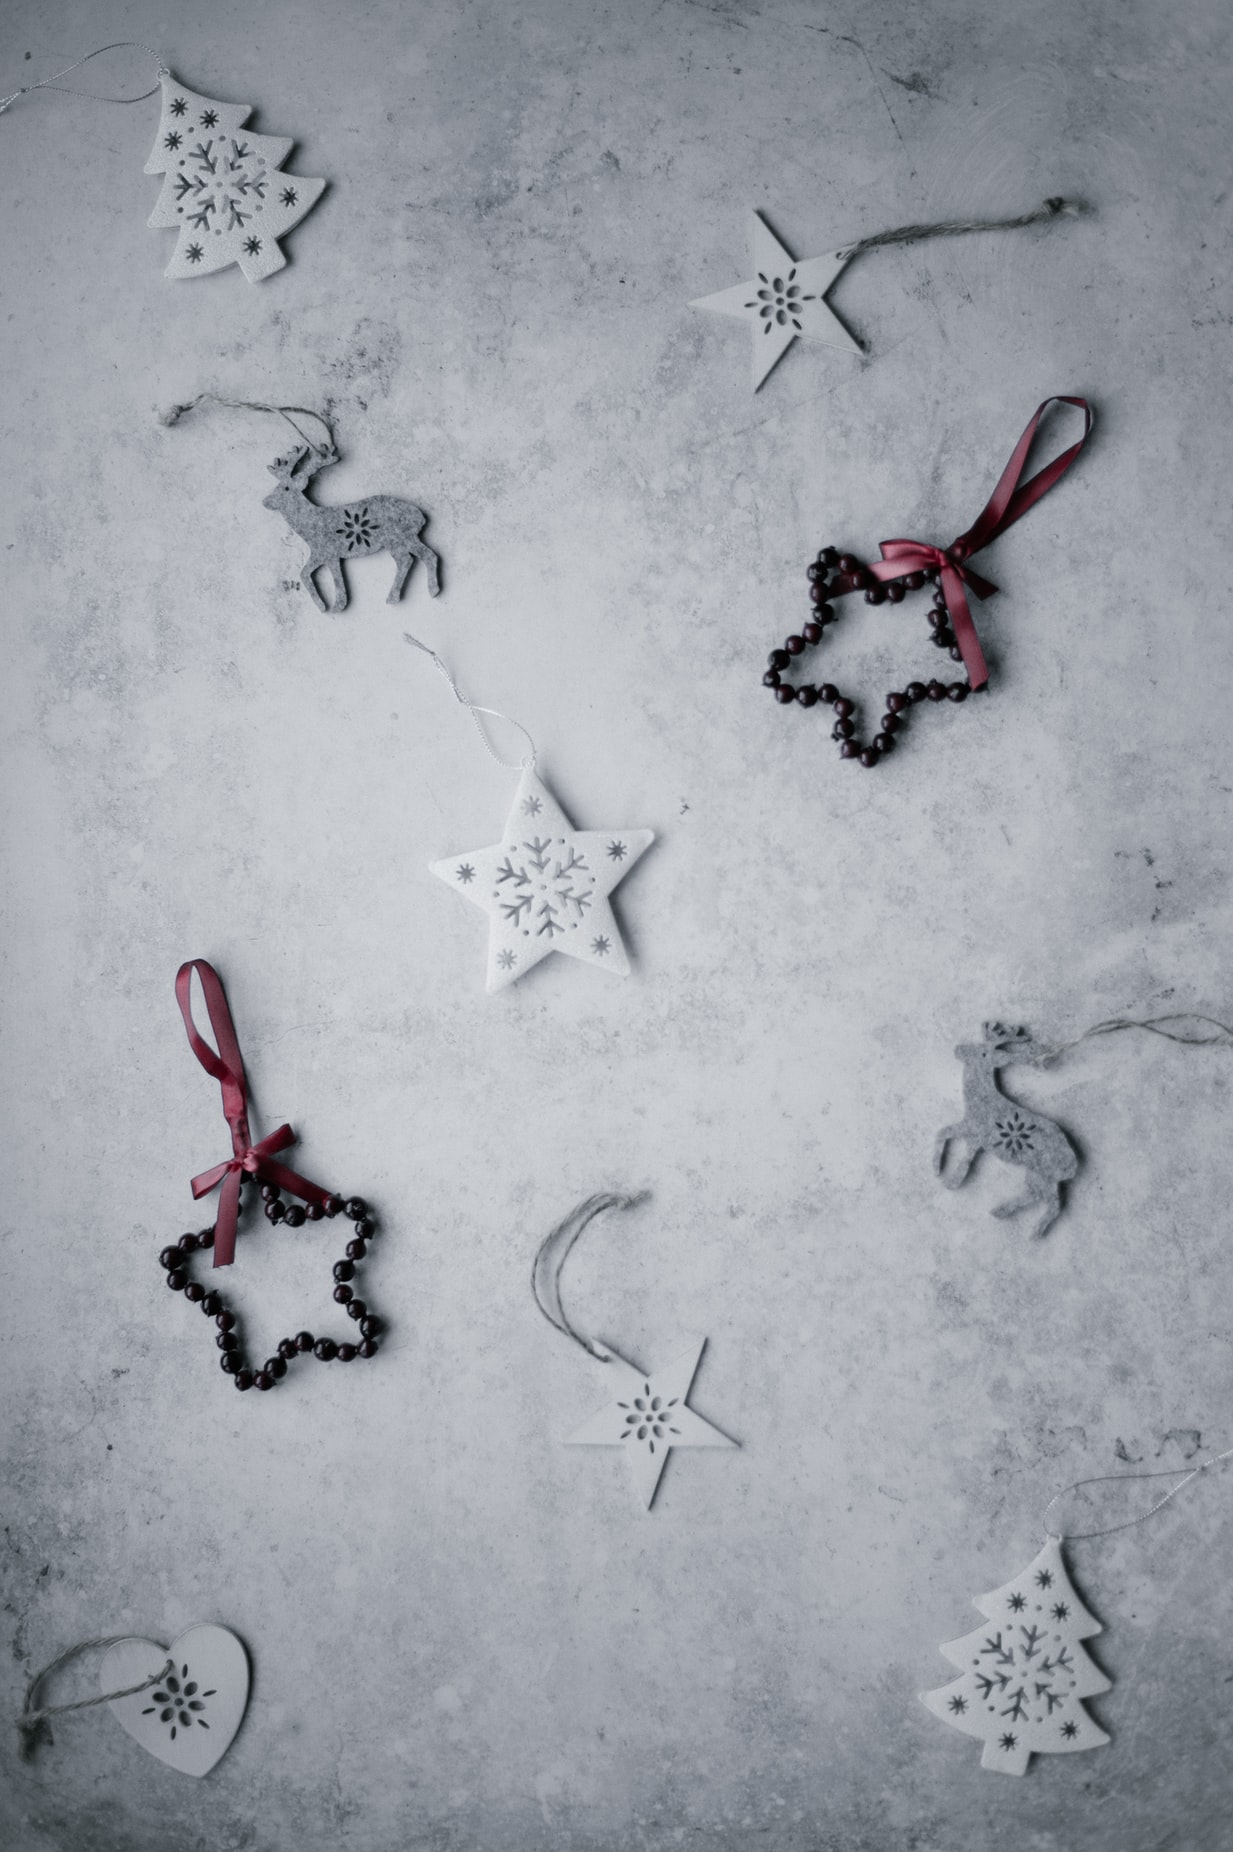 Best Star Christmas Decorations 2